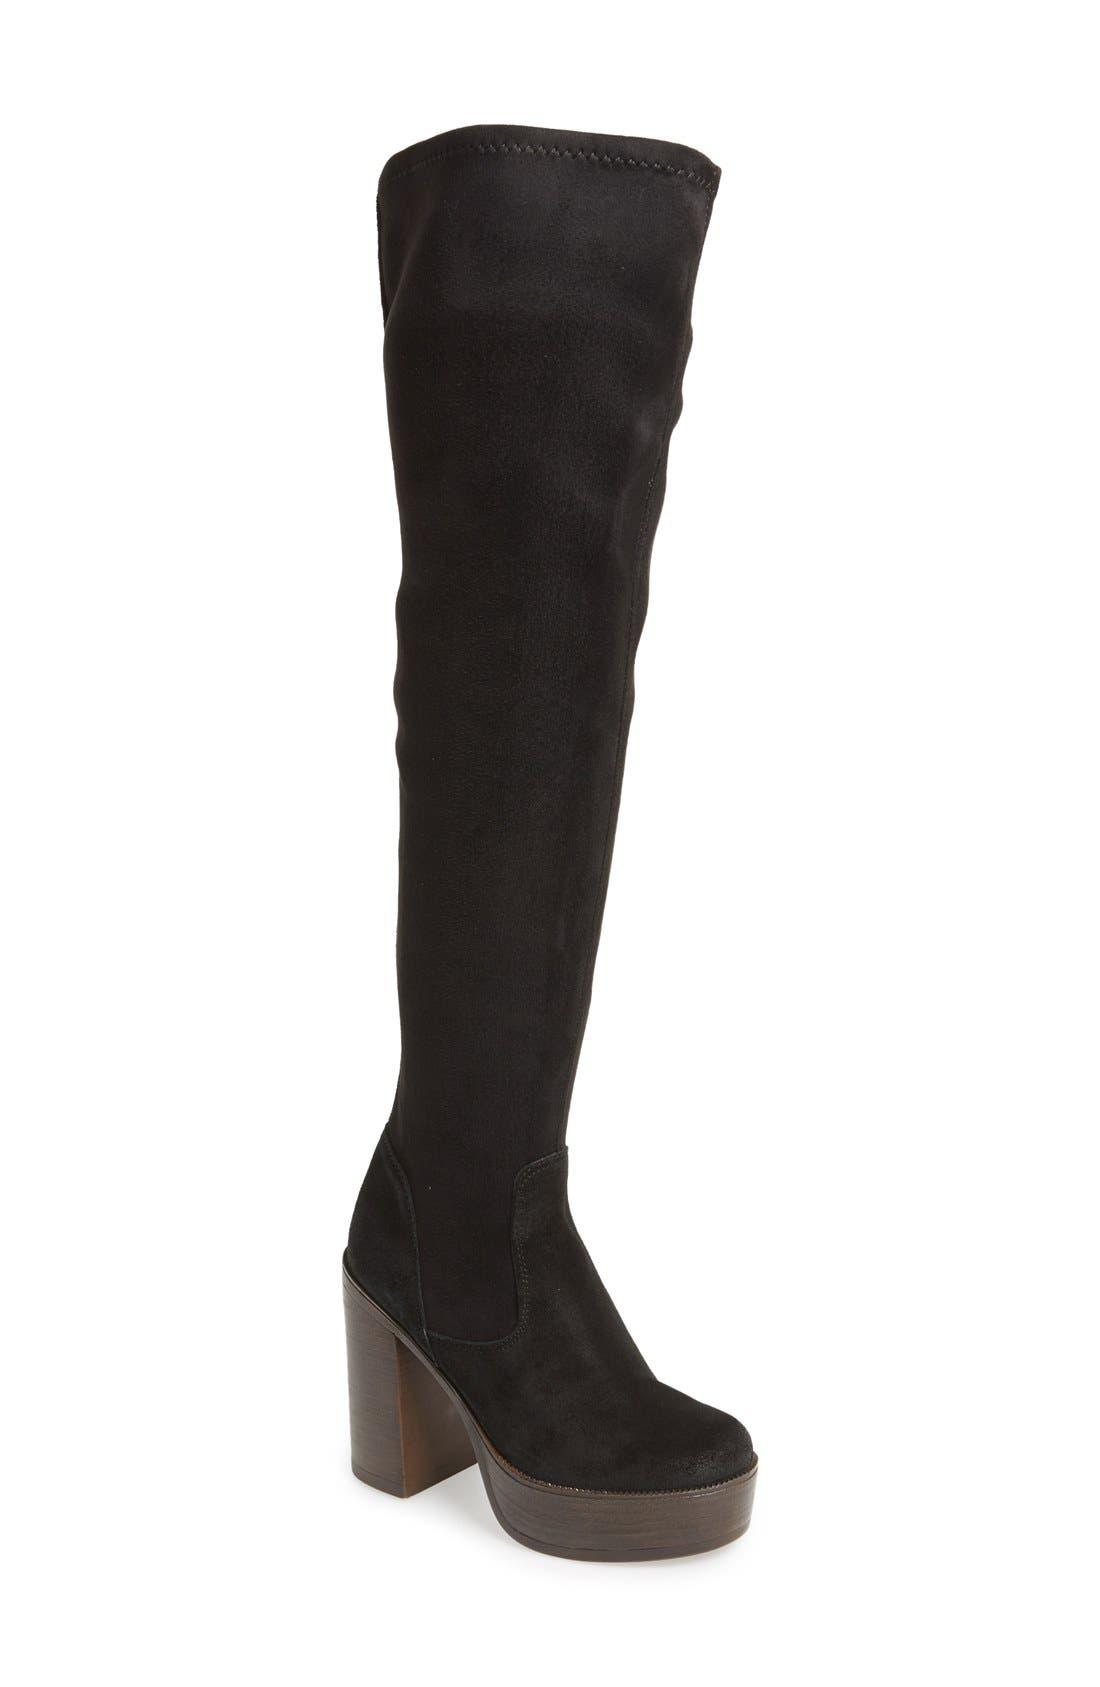 Main Image - Topshop 'Buddy '70s' Over the Knee Boot (Women)